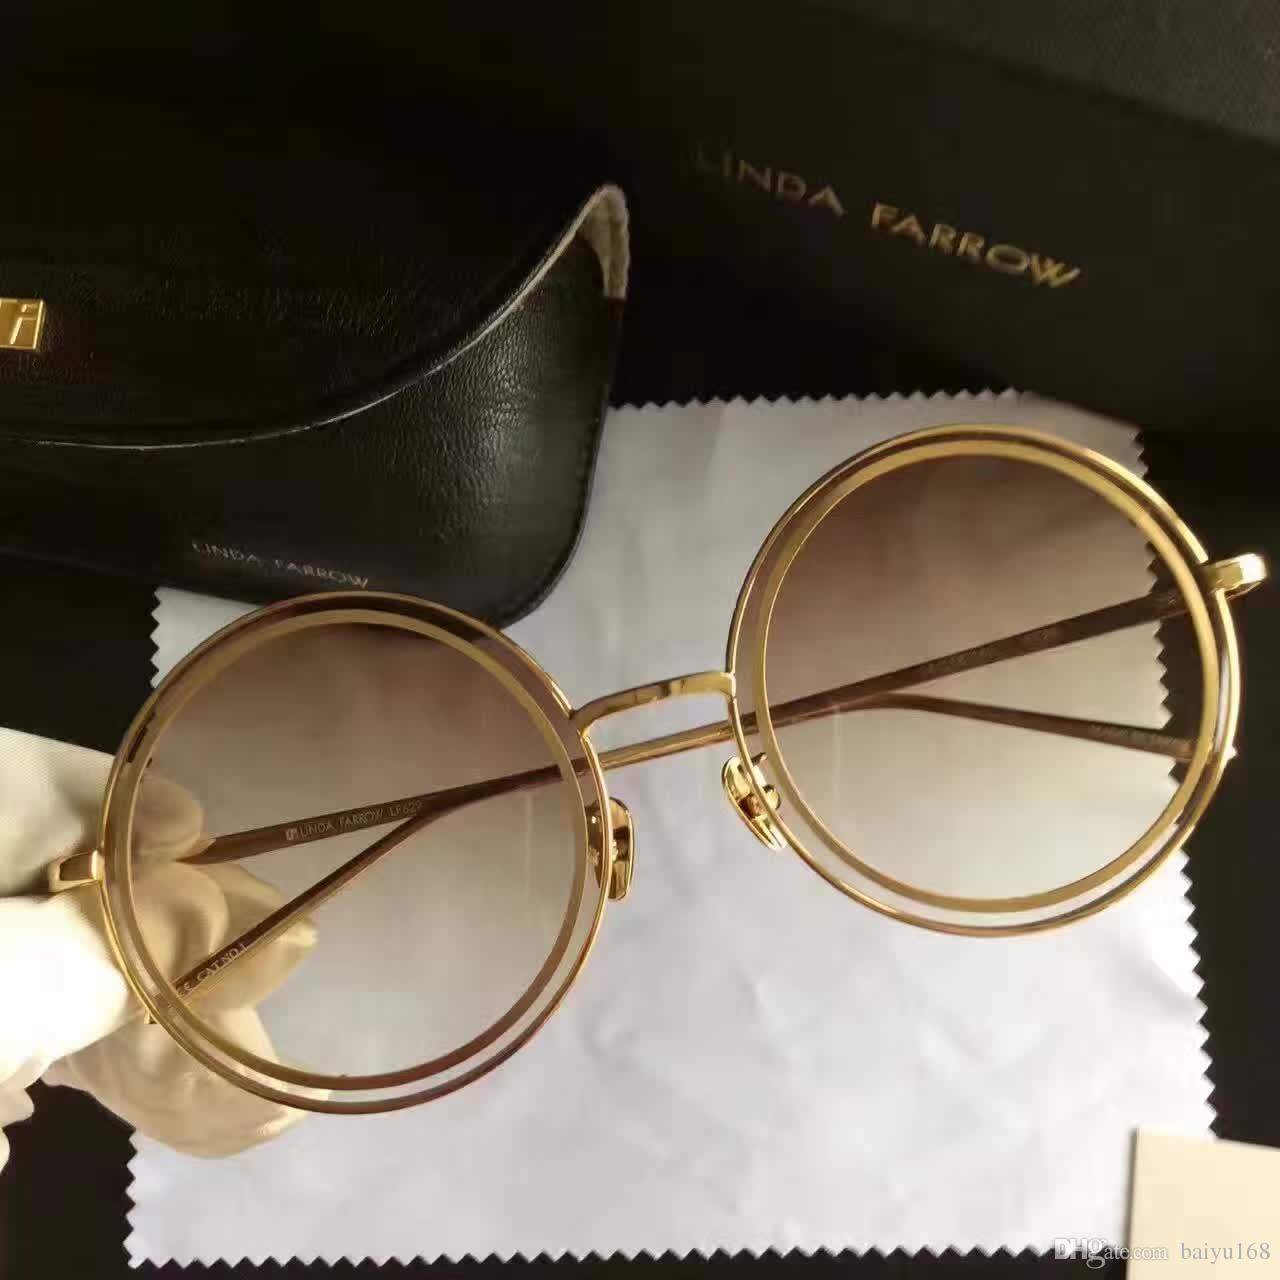 2017 Linda Farrow Lf629 Round Sunglasses Brown Shade Lens Brand New With  Box Sunglasses Sale Kids Sunglasses From Baiyu168, $52.27| Dhgate.Com